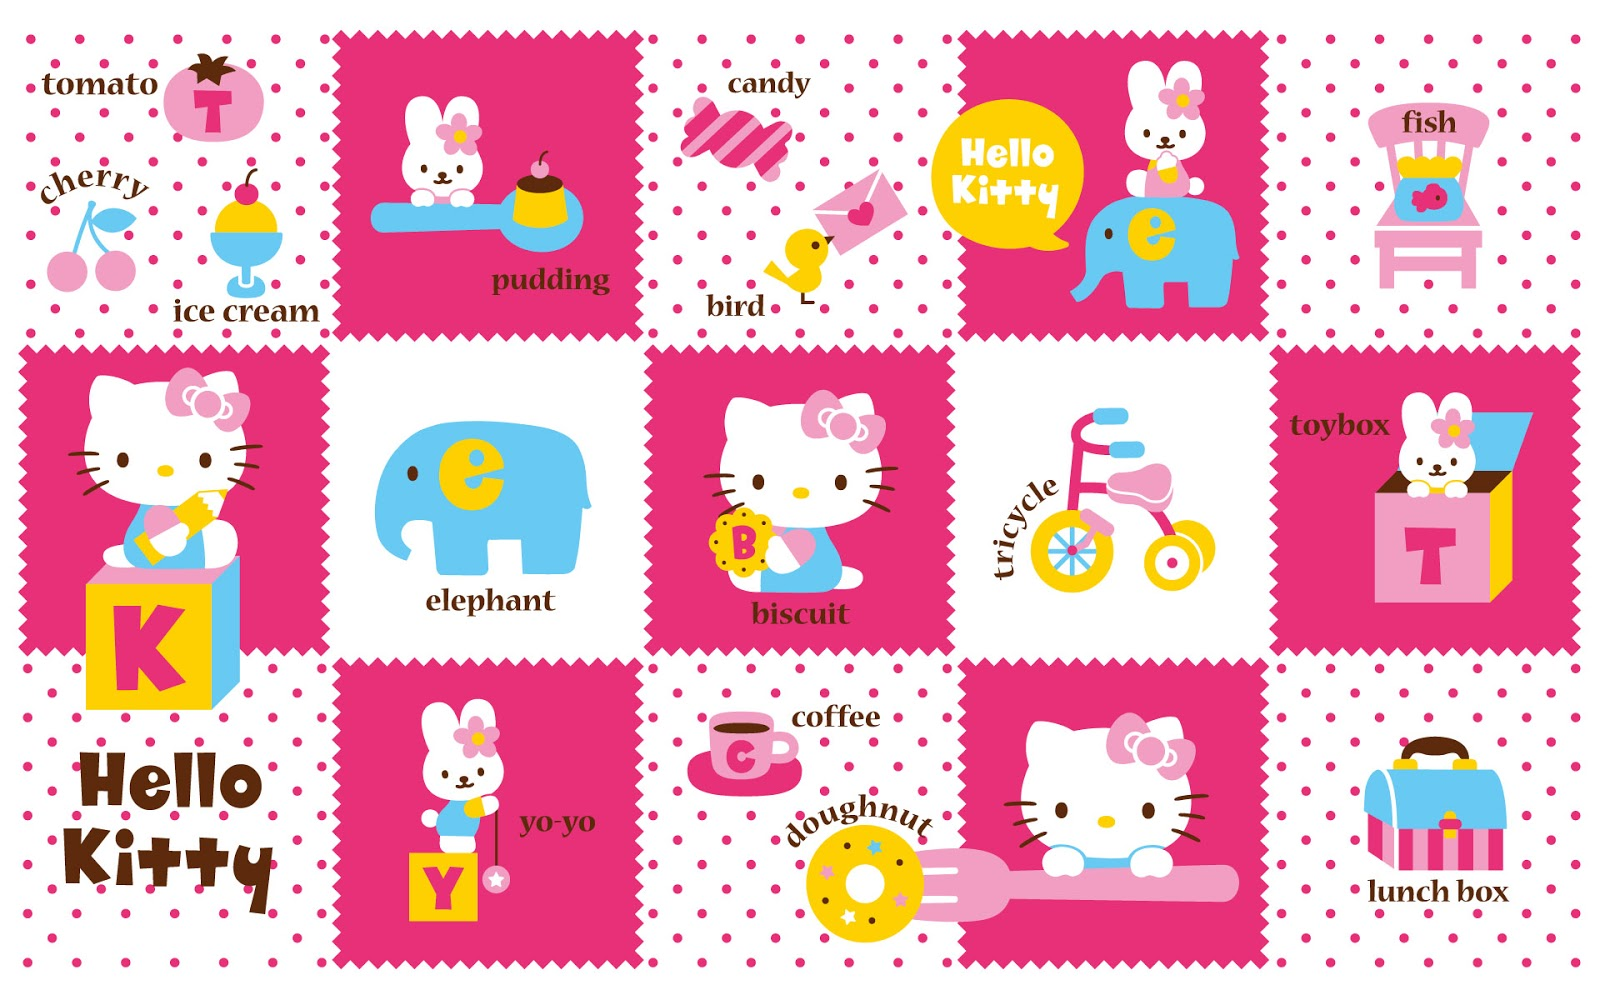 Simple Wallpaper Hello Kitty Ice Cream - hello%2Bkitty%2Bwallpaper%2Bblackberry  Image_452392.jpg